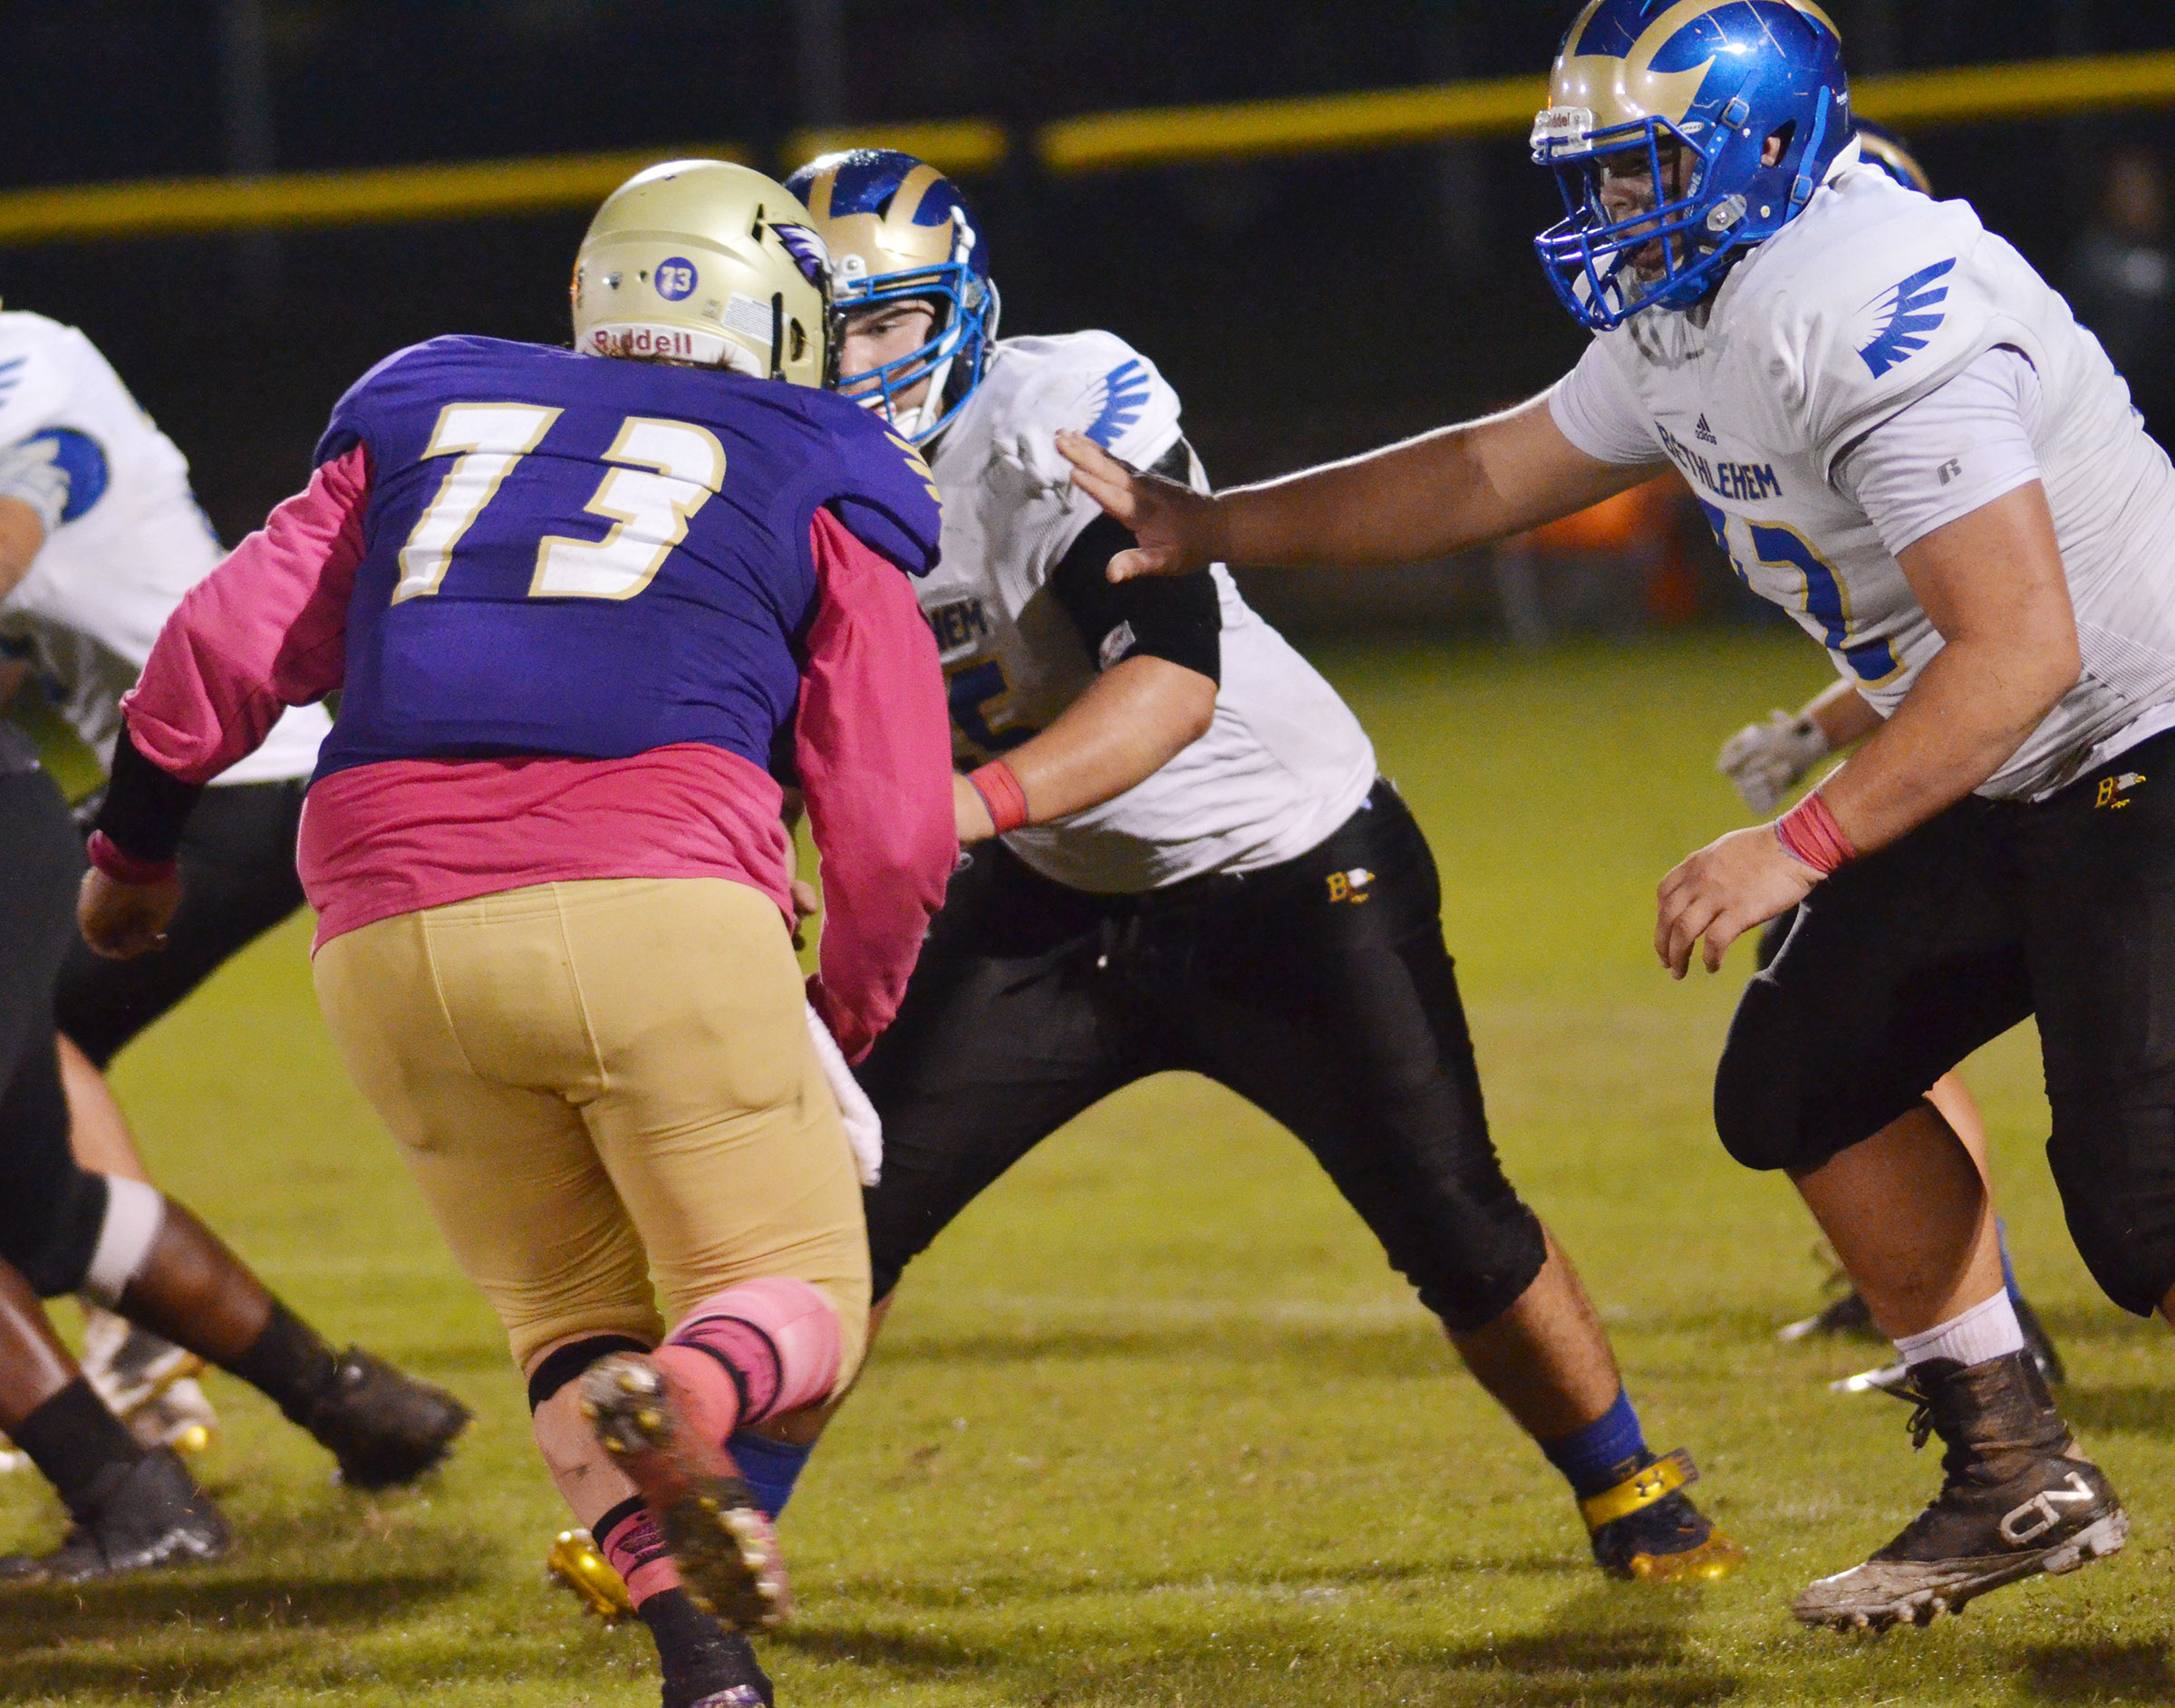 CHS senor Ryan Jeffries tackles.